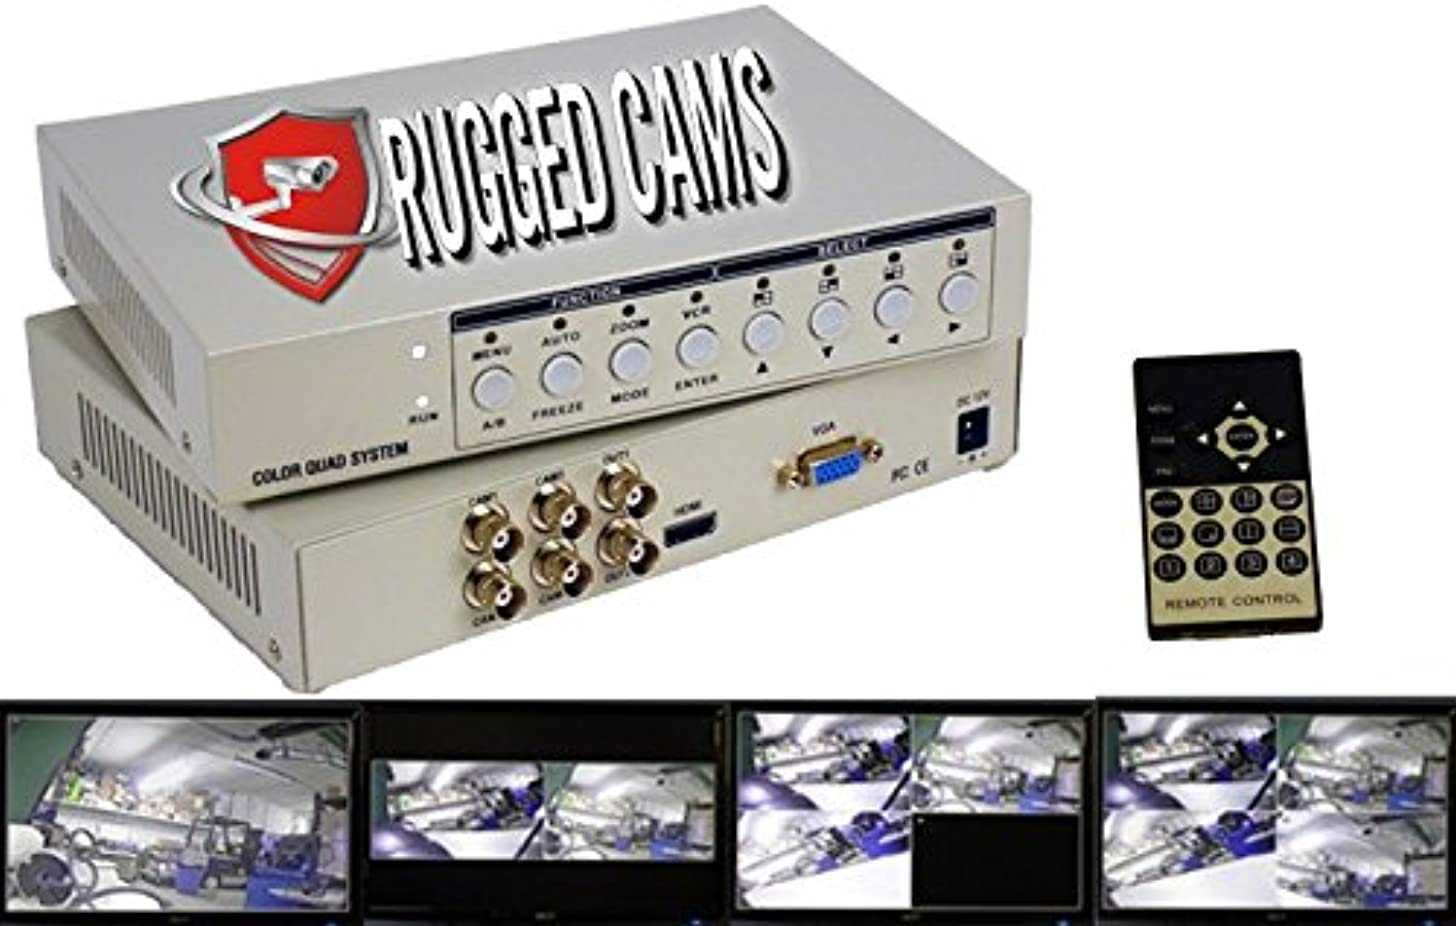 Rugged Cams - High Definition 1080p Quad Processor / Quad Splitter - TVI/AHD/Analog - HDMI/VGA/BNC Outputs - 4 Channel HD